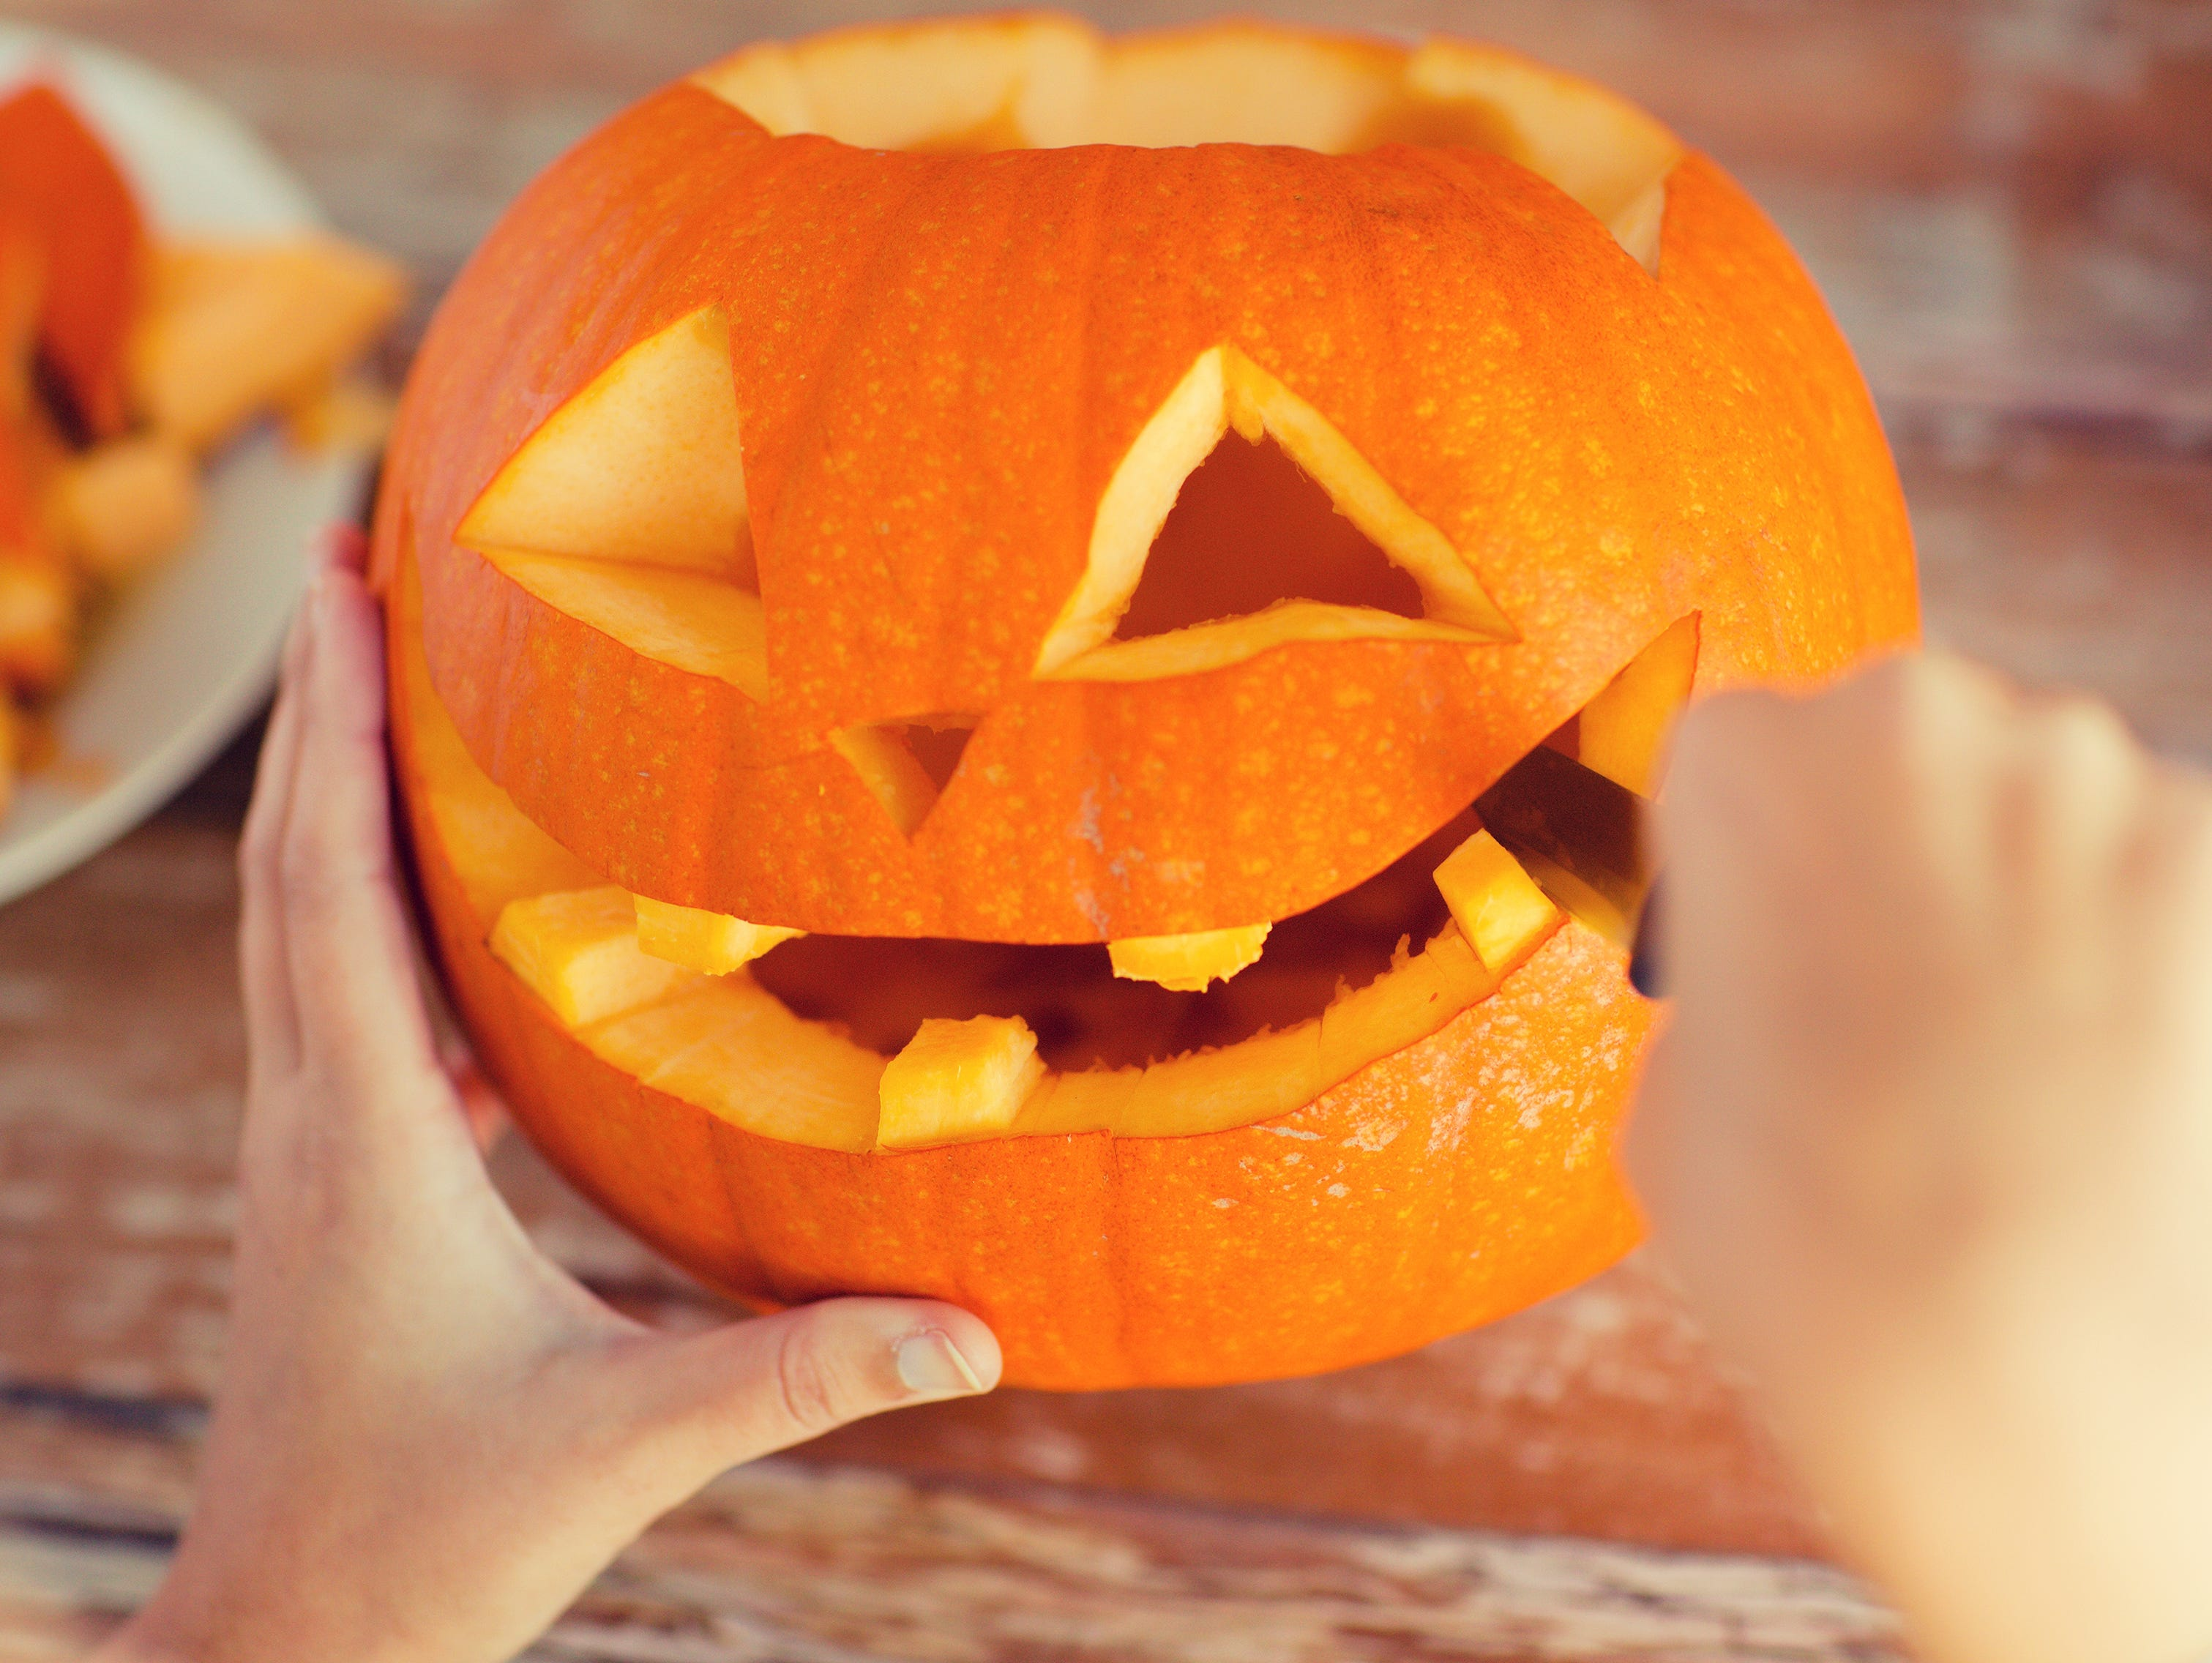 Submit a photo of your carved pumpkin  for a chance to win a sweet prize.